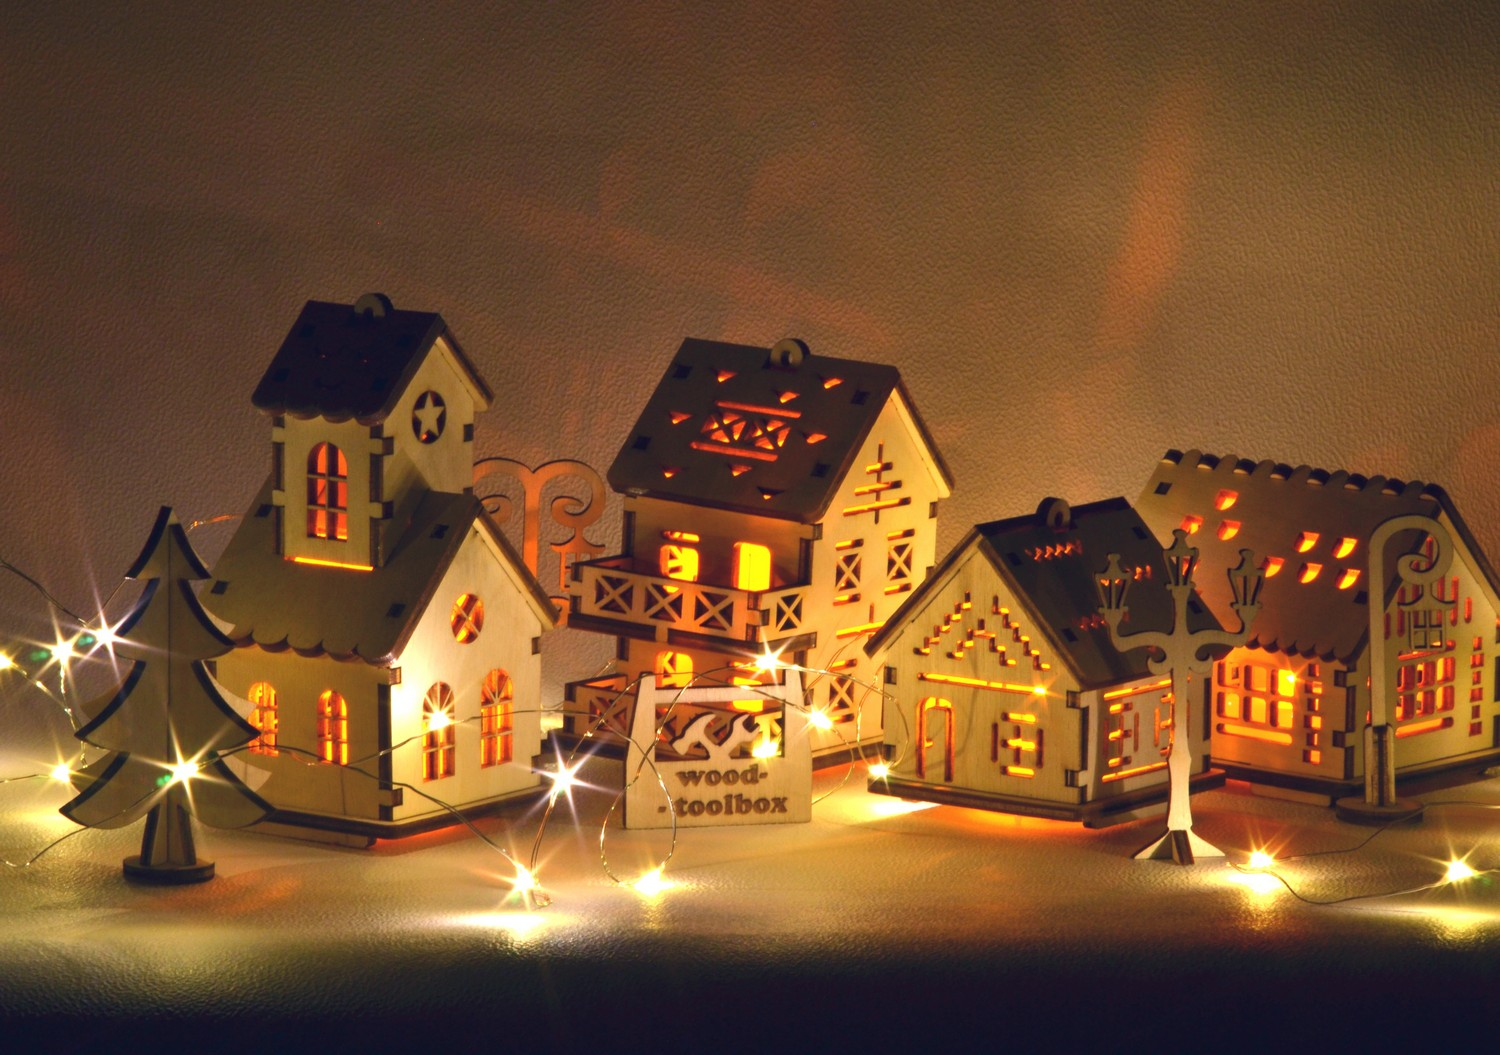 Christmas House.Christmas Village Torch For Led Candles